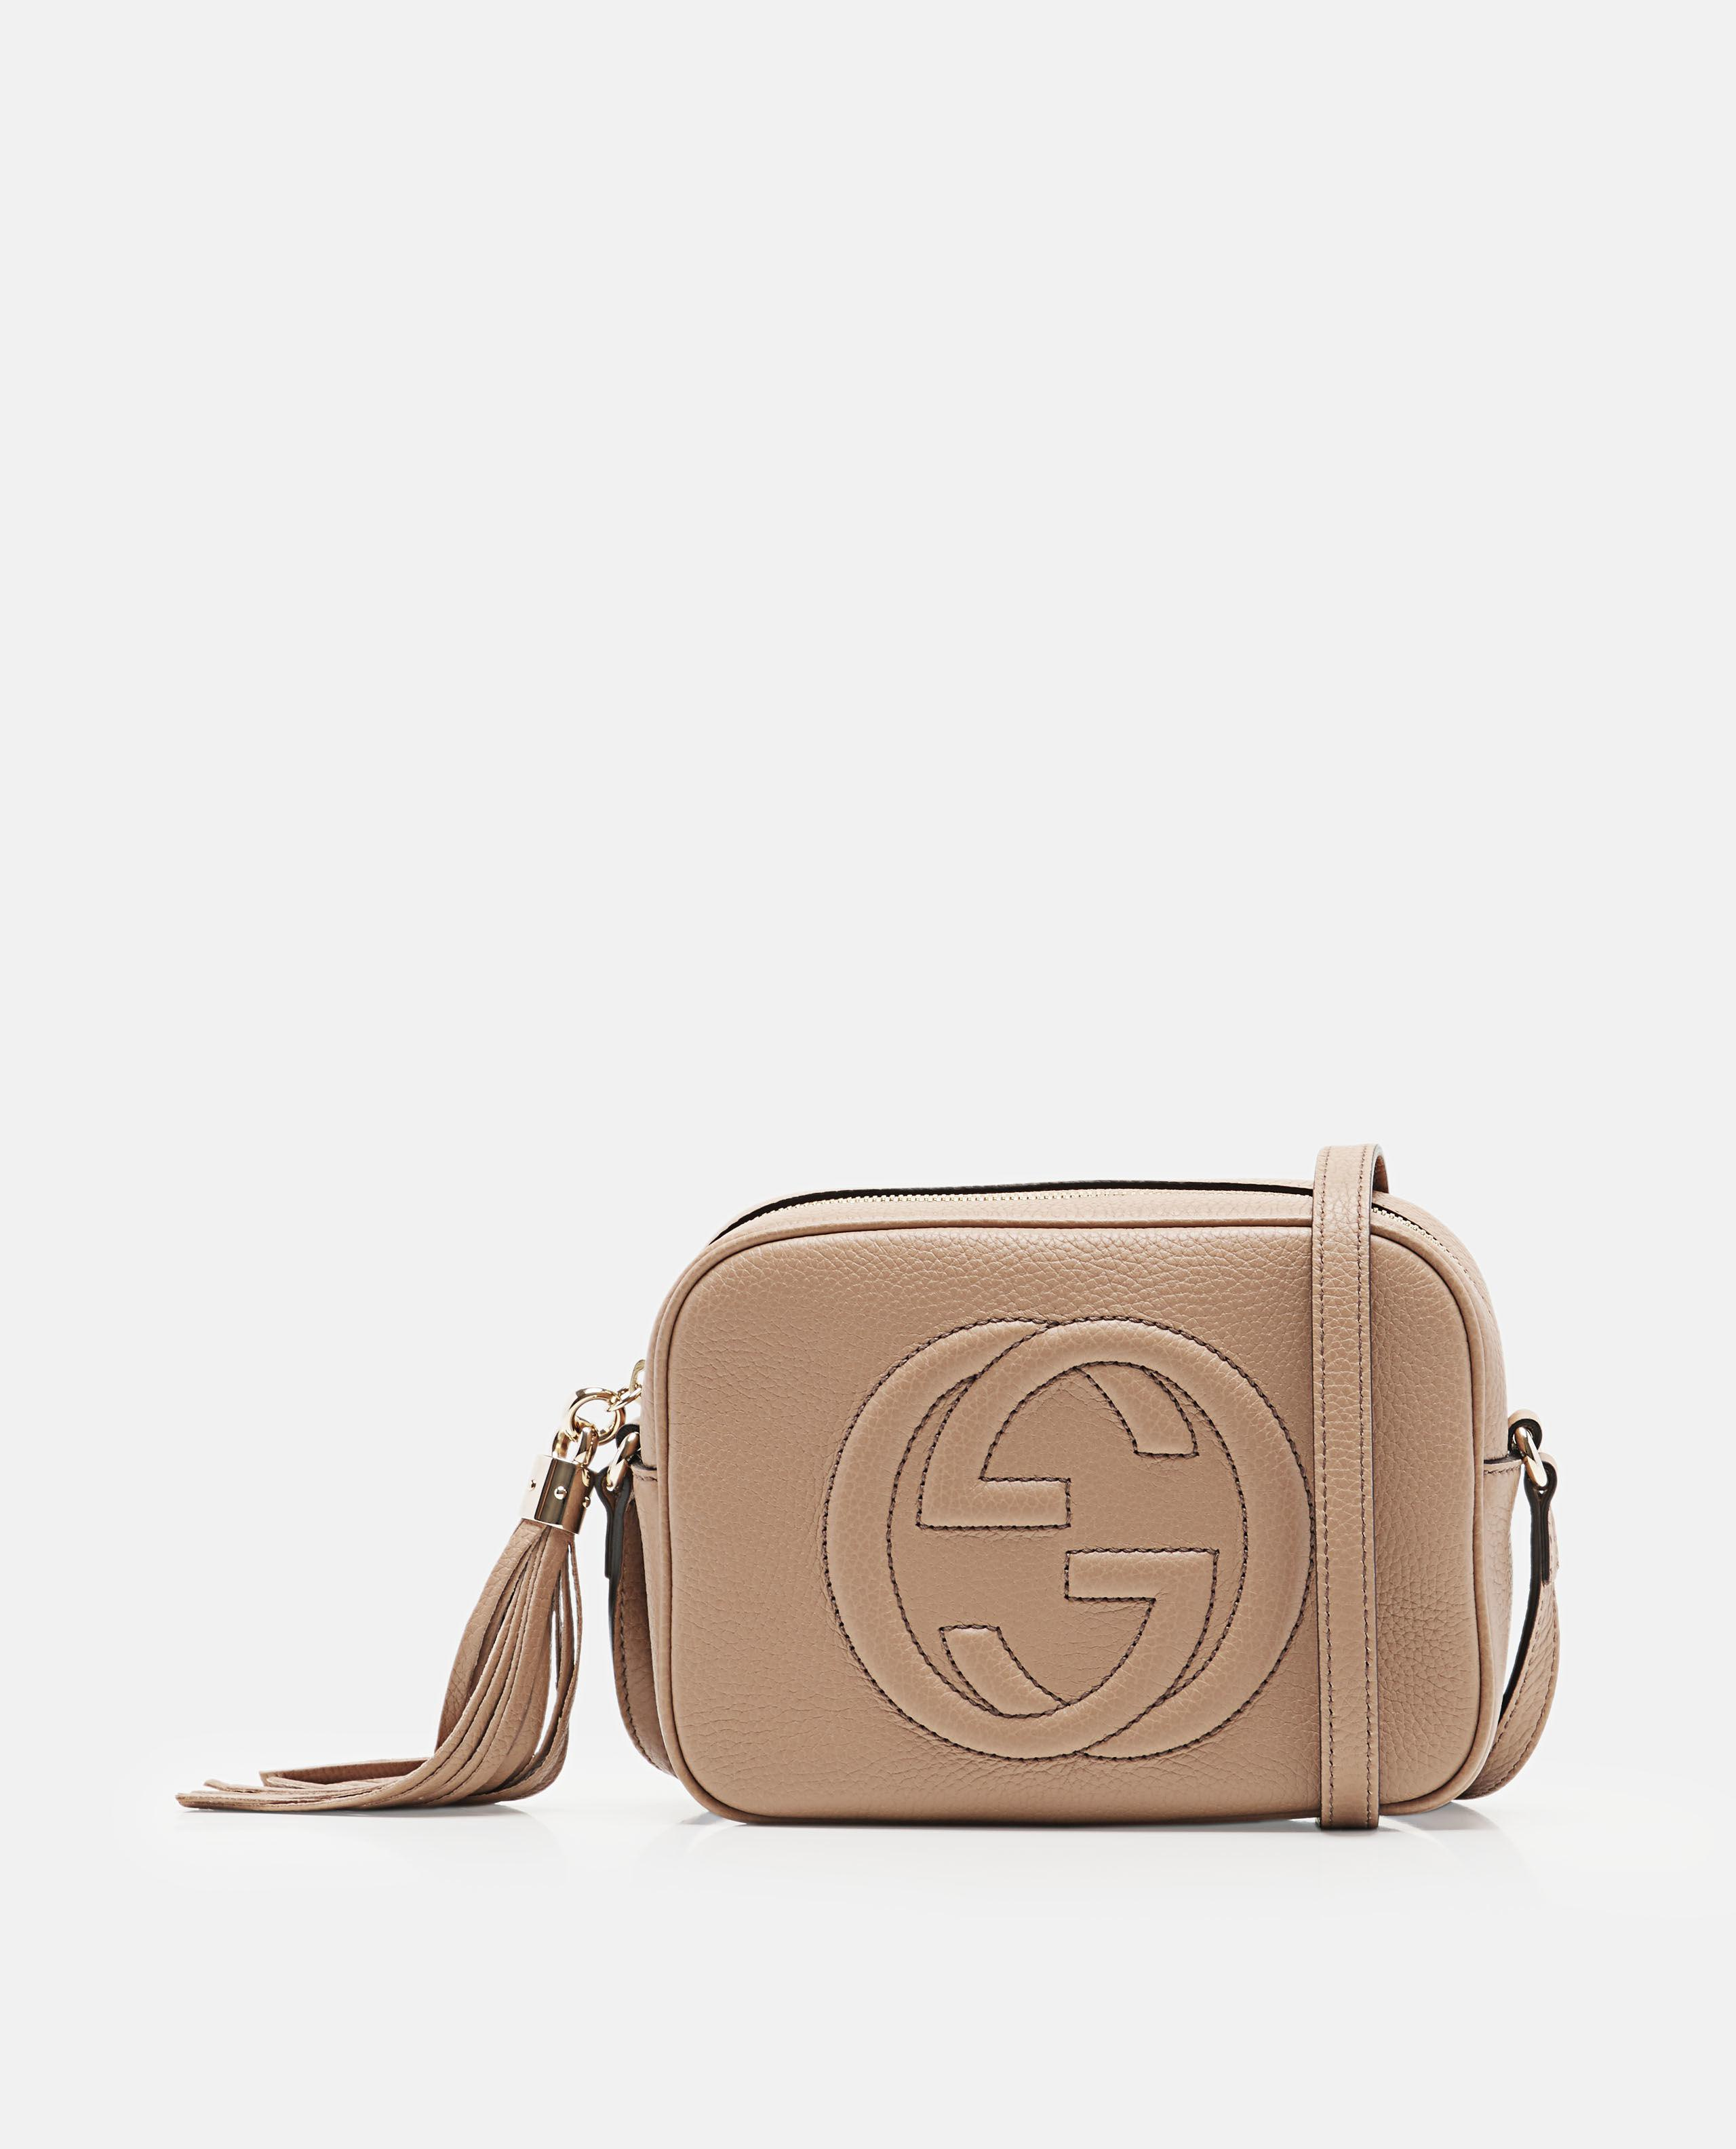 4d0348bac5c Lyst - Gucci Soho Small Leather Disco Bag in Brown